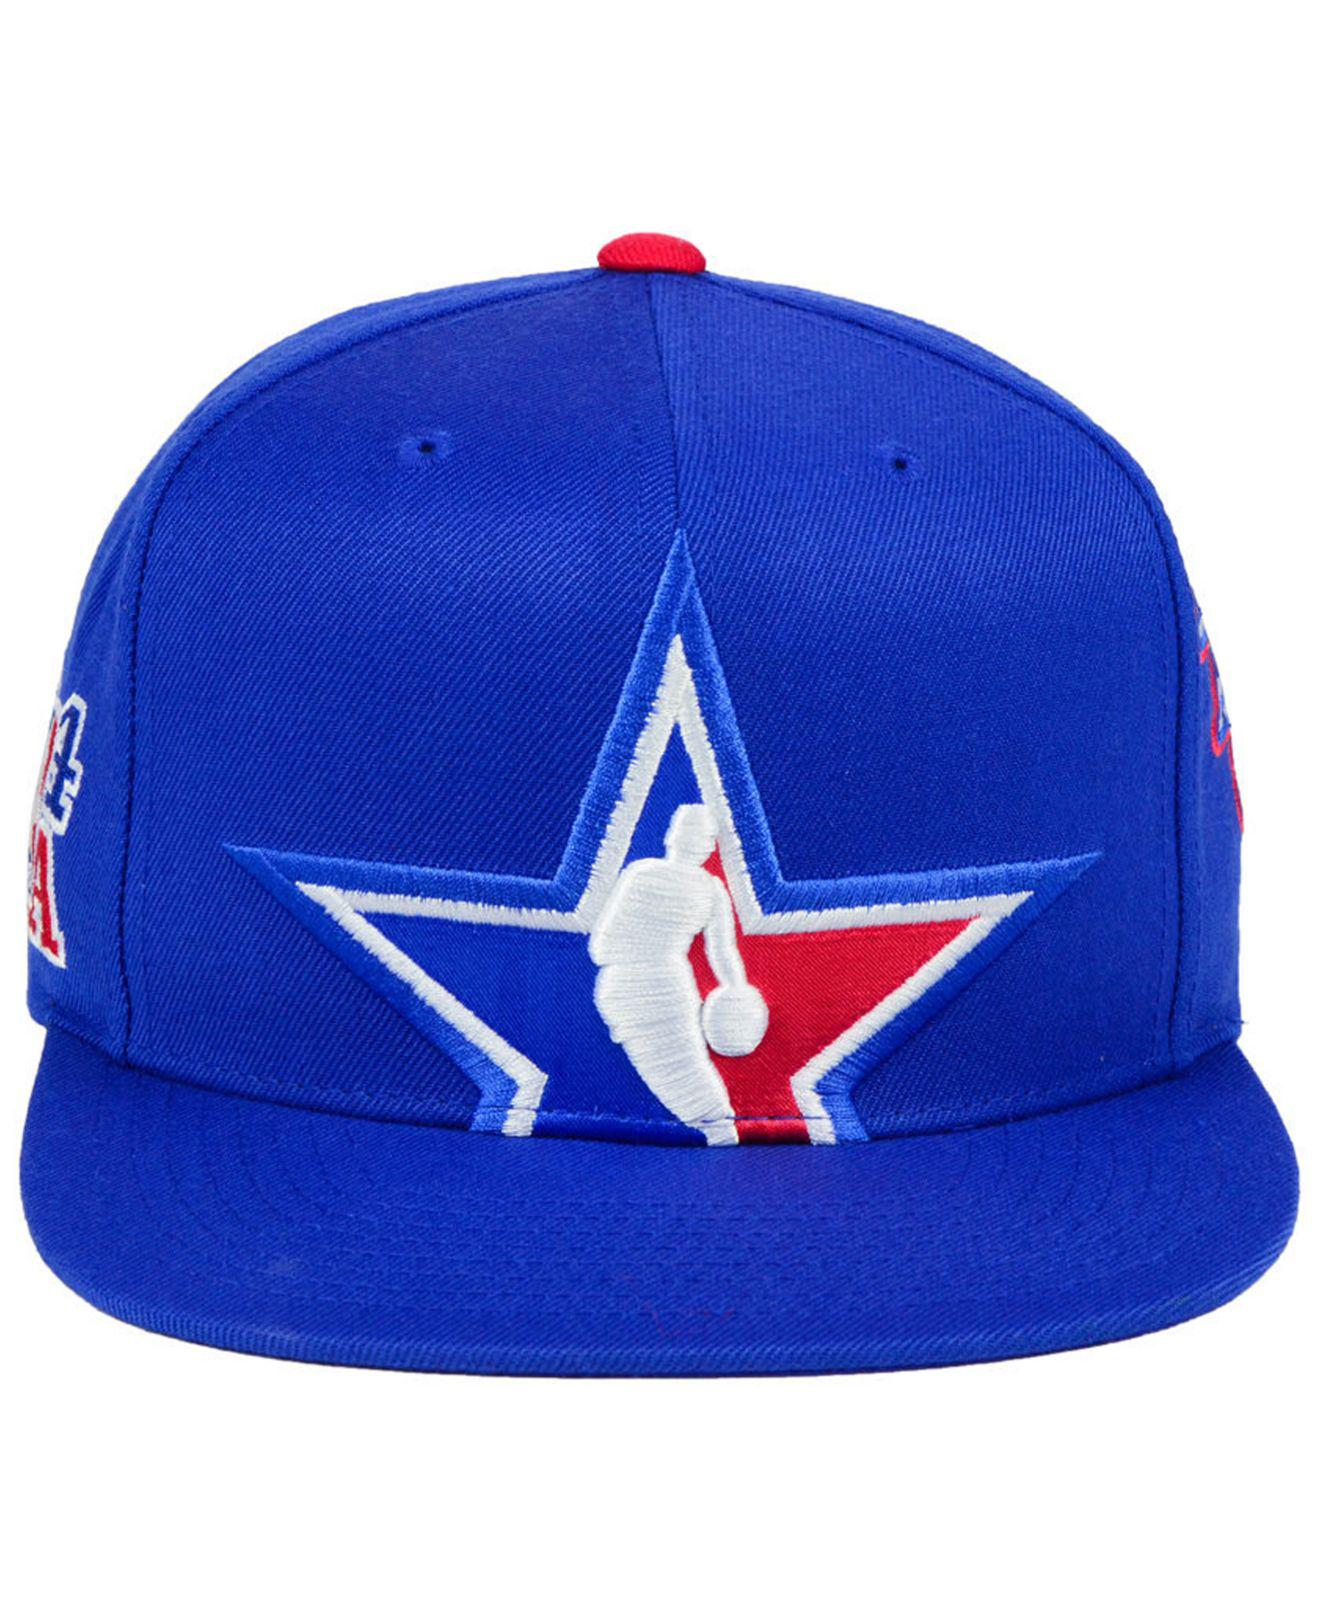 2a125da59af Lyst - Mitchell   Ness 2018 Nba All Star Collection East Snapback ...